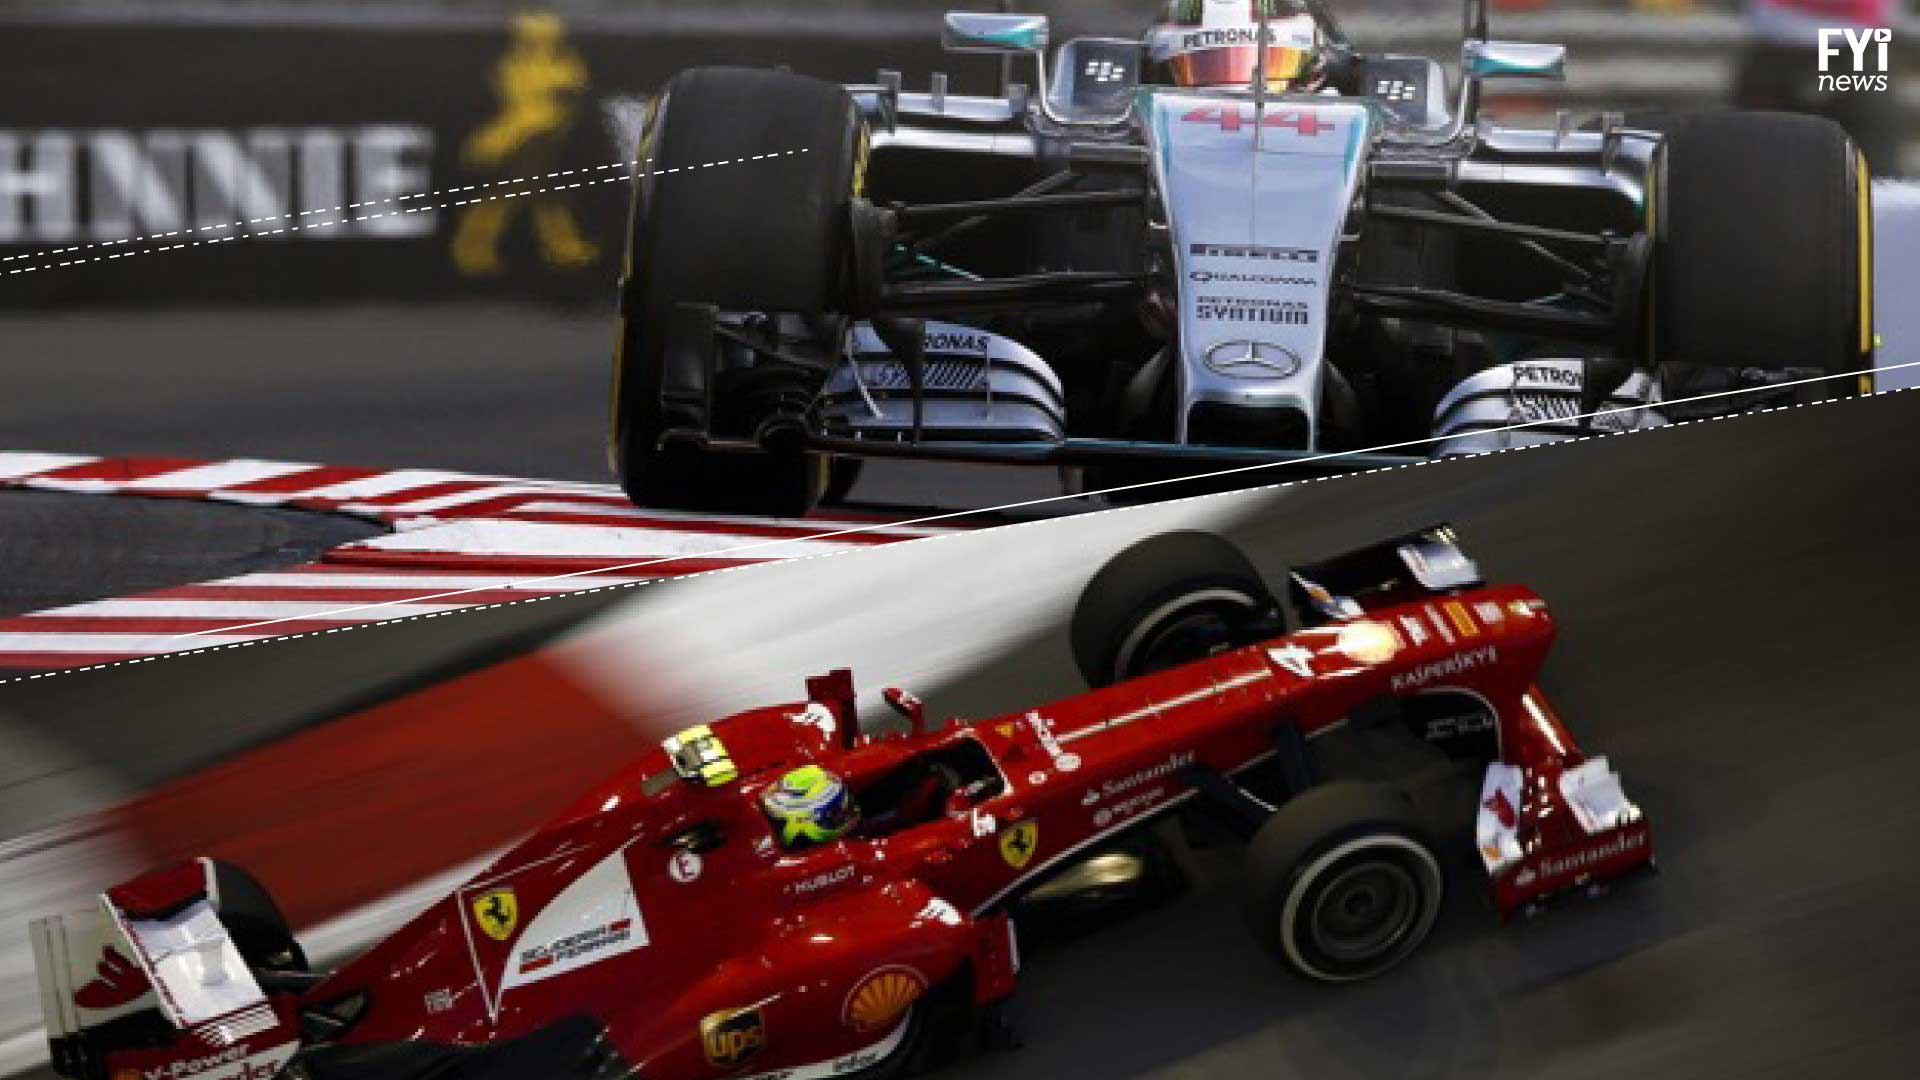 German Car Wallpaper F1 News F1 Live F1 Results 2018 Formula 1 News From